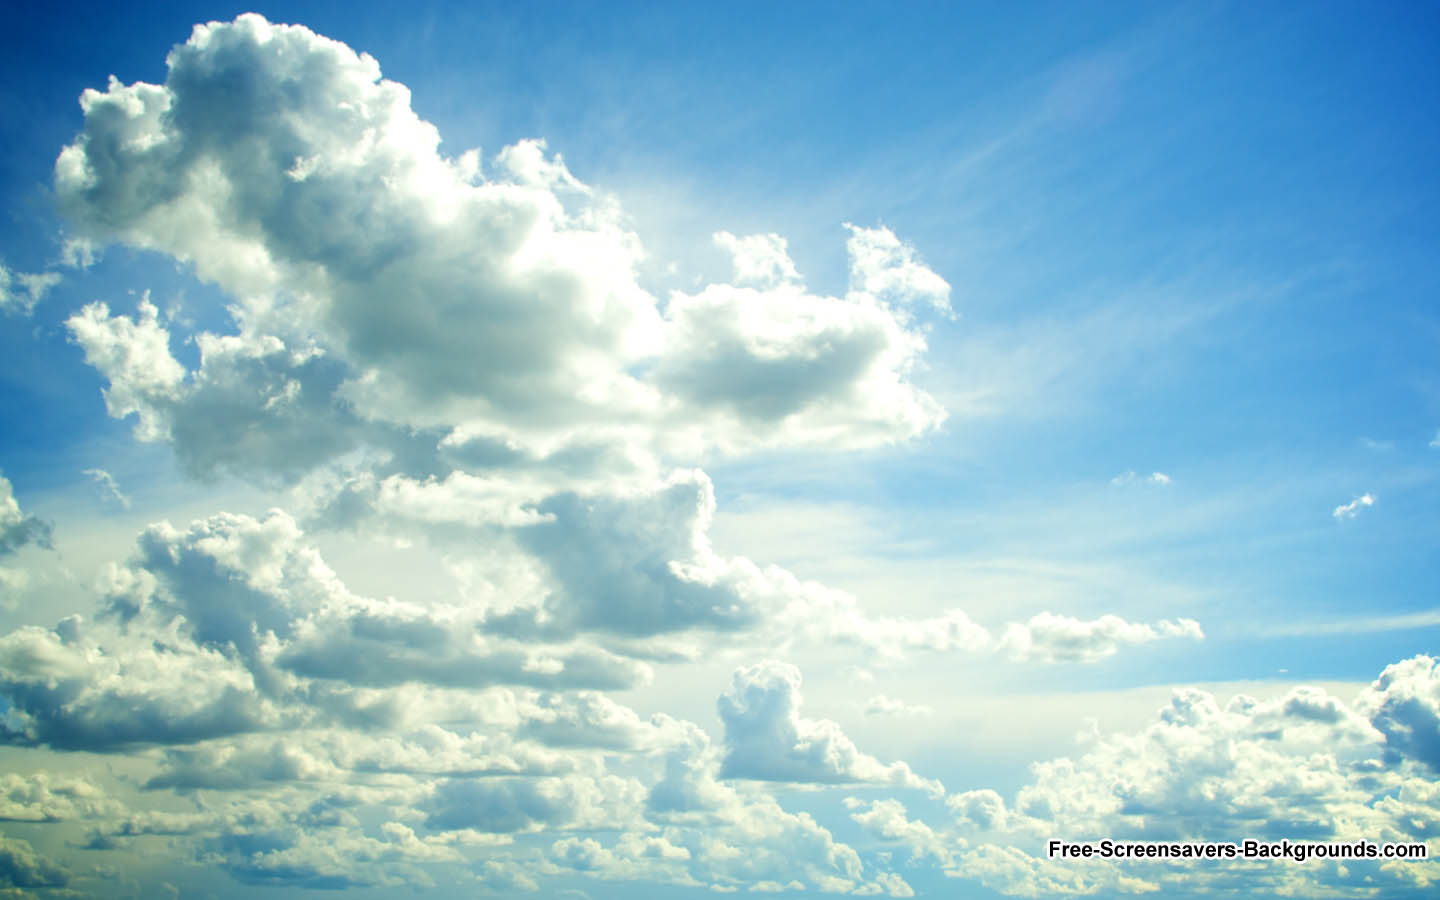 Clouds Over Prairie Sky   Screensavers and Backgrounds 1440x900